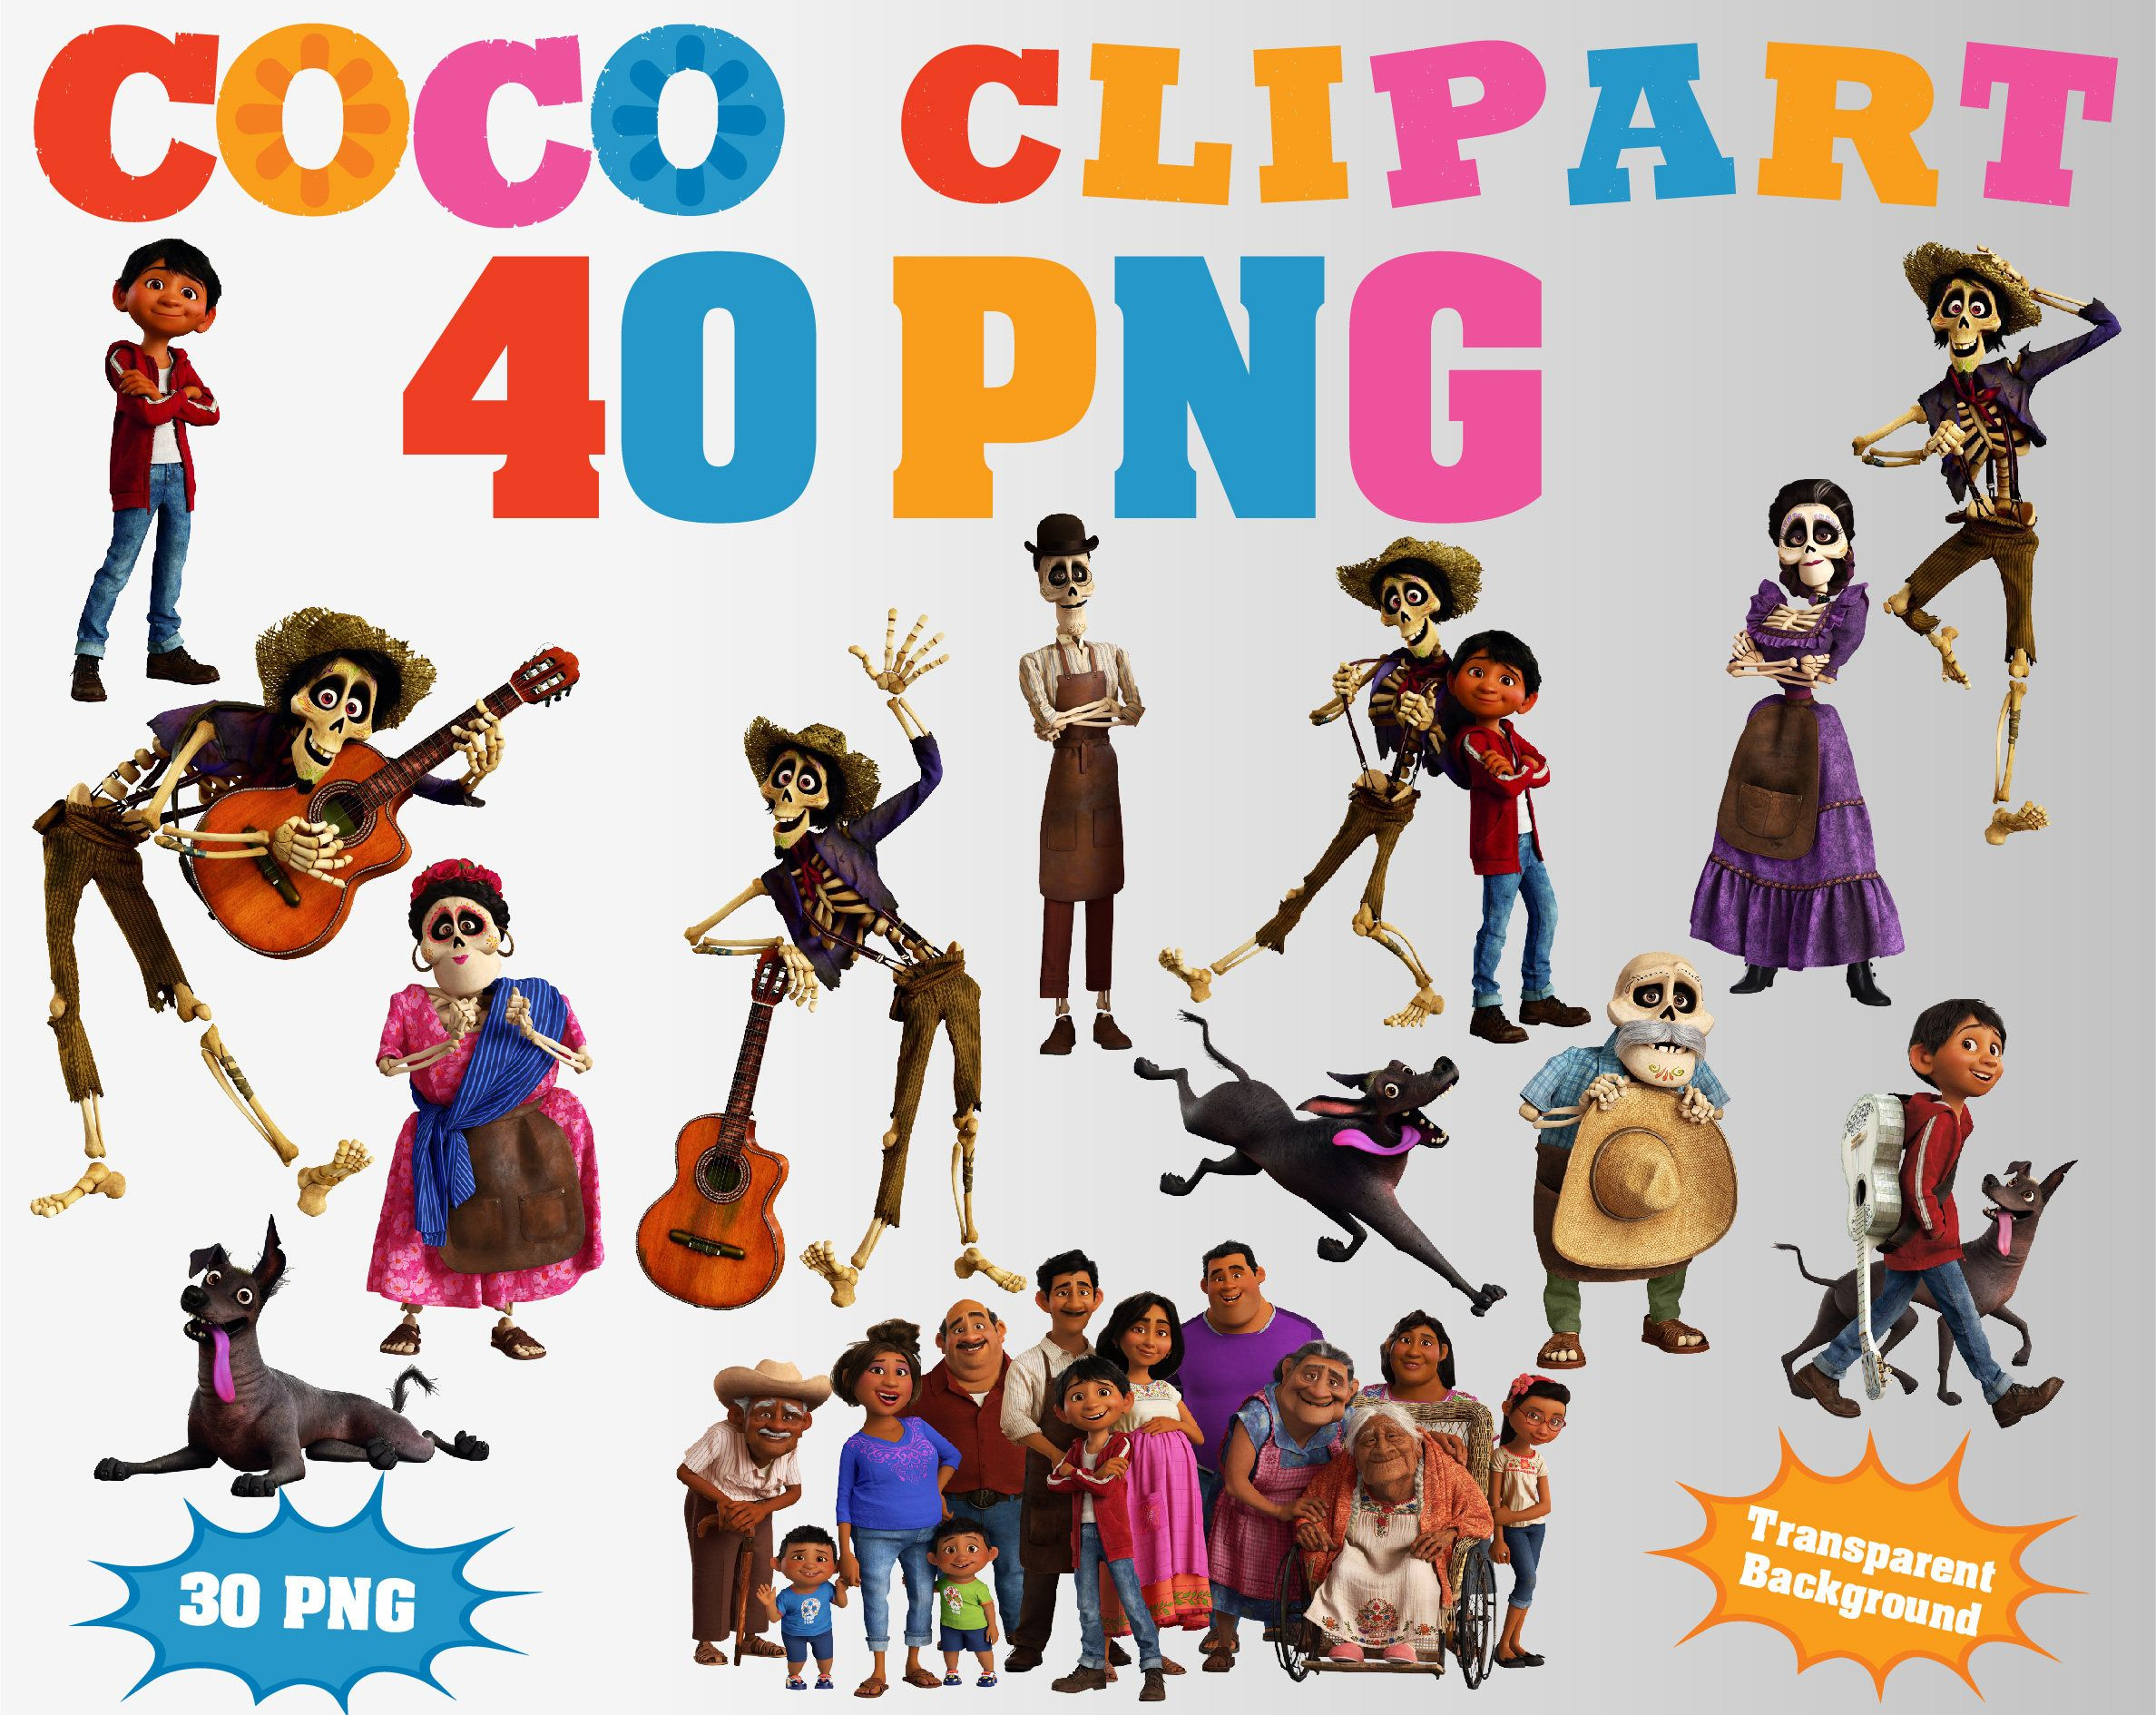 Coco Movie 2017 Clipart 40 Png Transparent Background Clip Art Birthday Decorations Kids Coco